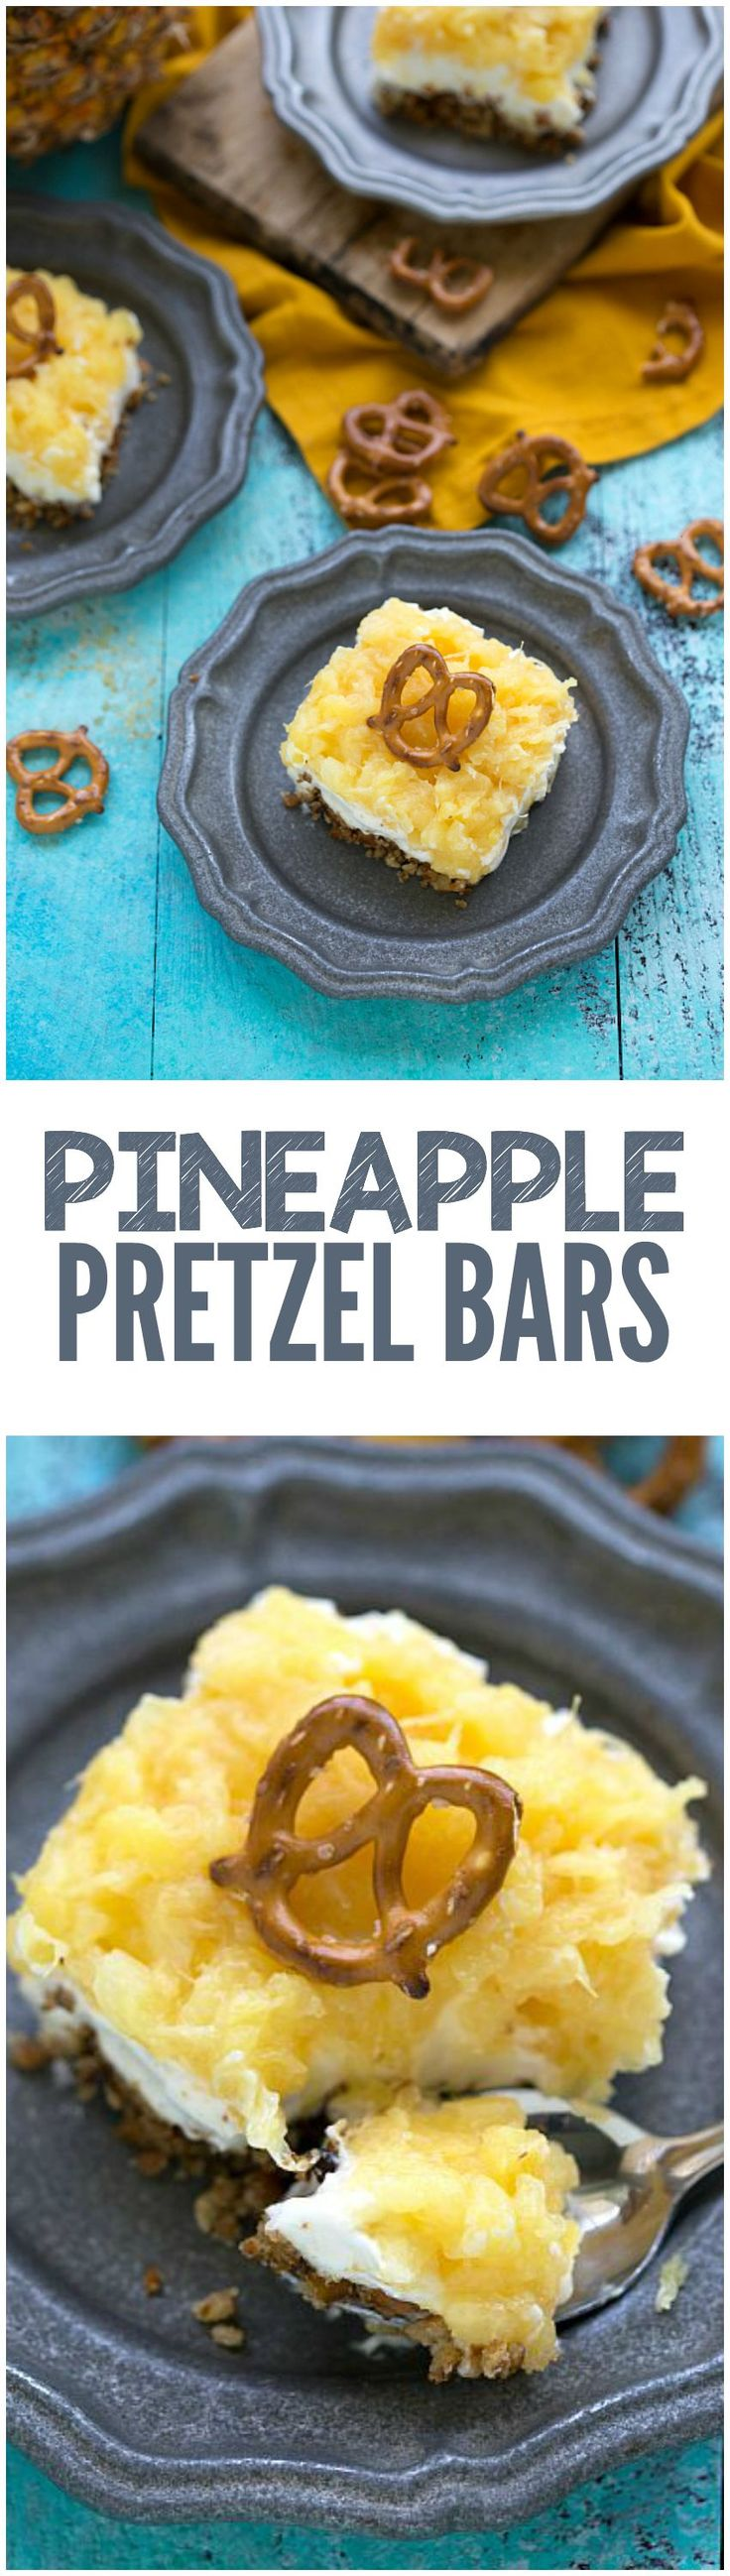 These Pineapple Pretzel Bars are quick and easy and the sweet and salty combo is the best part! Perfect for summer!